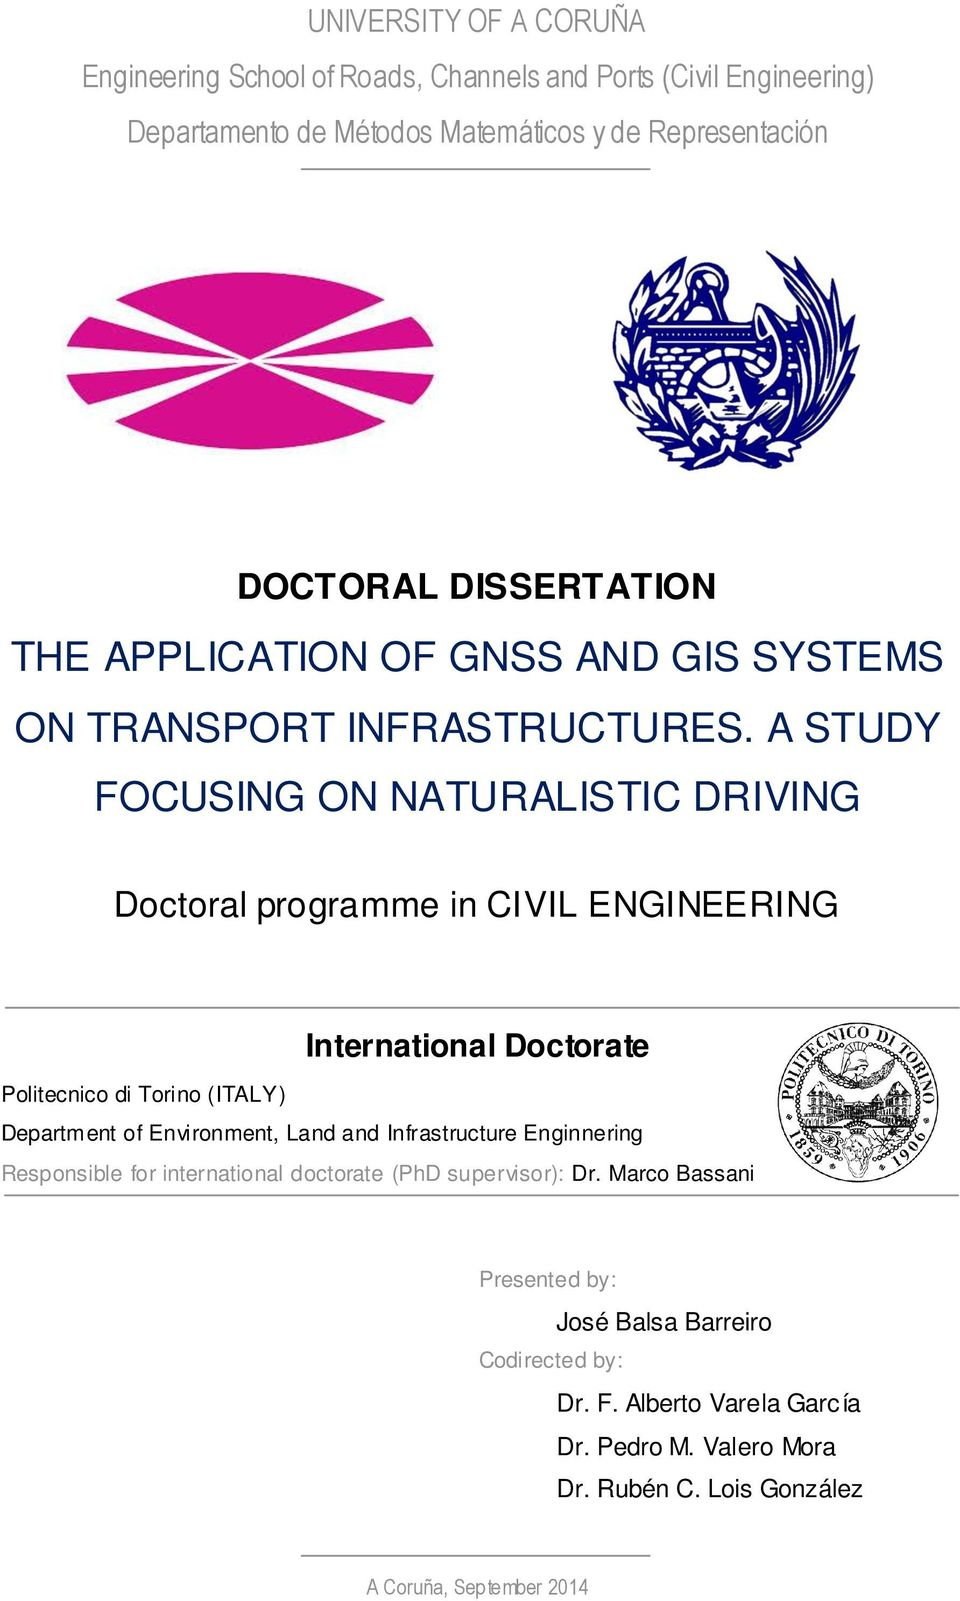 A STUDY FOCUSING ON NATURALISTIC DRIVING Doctoral programme in CIVIL ENGINEERING International Doctorate Politecnico di Torino (ITALY) Department of Environment, Land